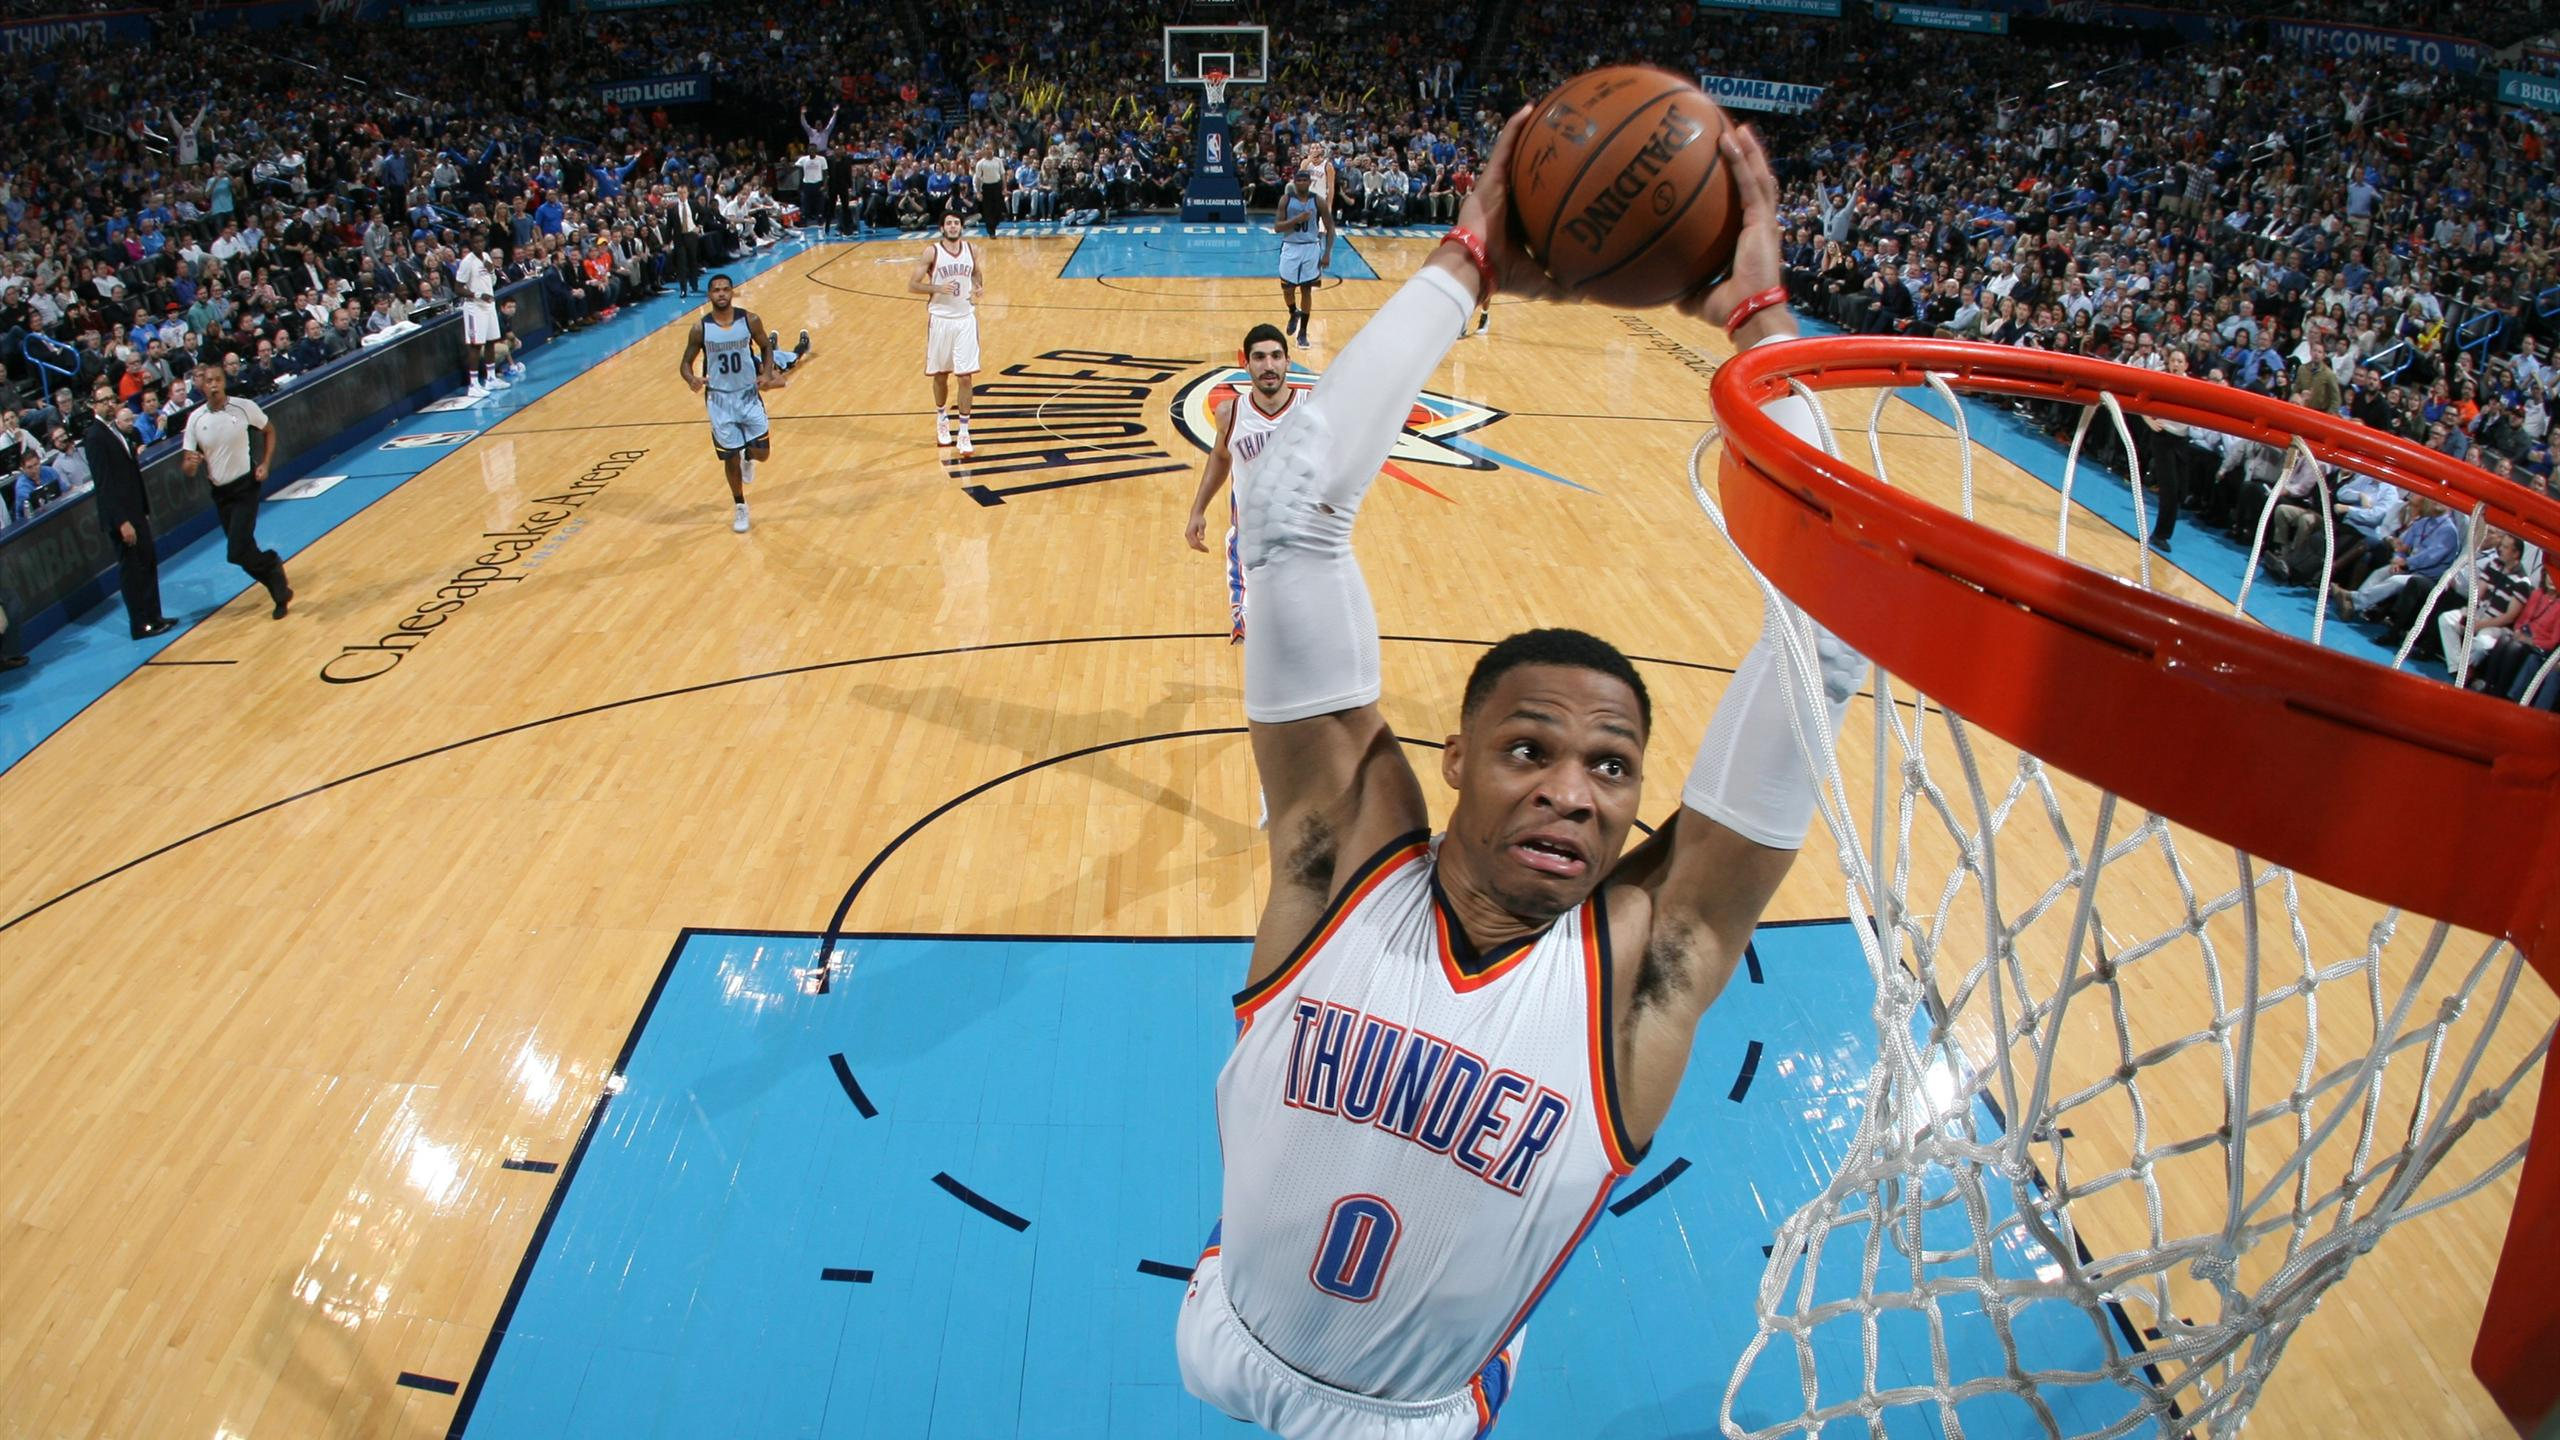 Russell Westbrook (Oklahoma City Thunder) face à Memphis